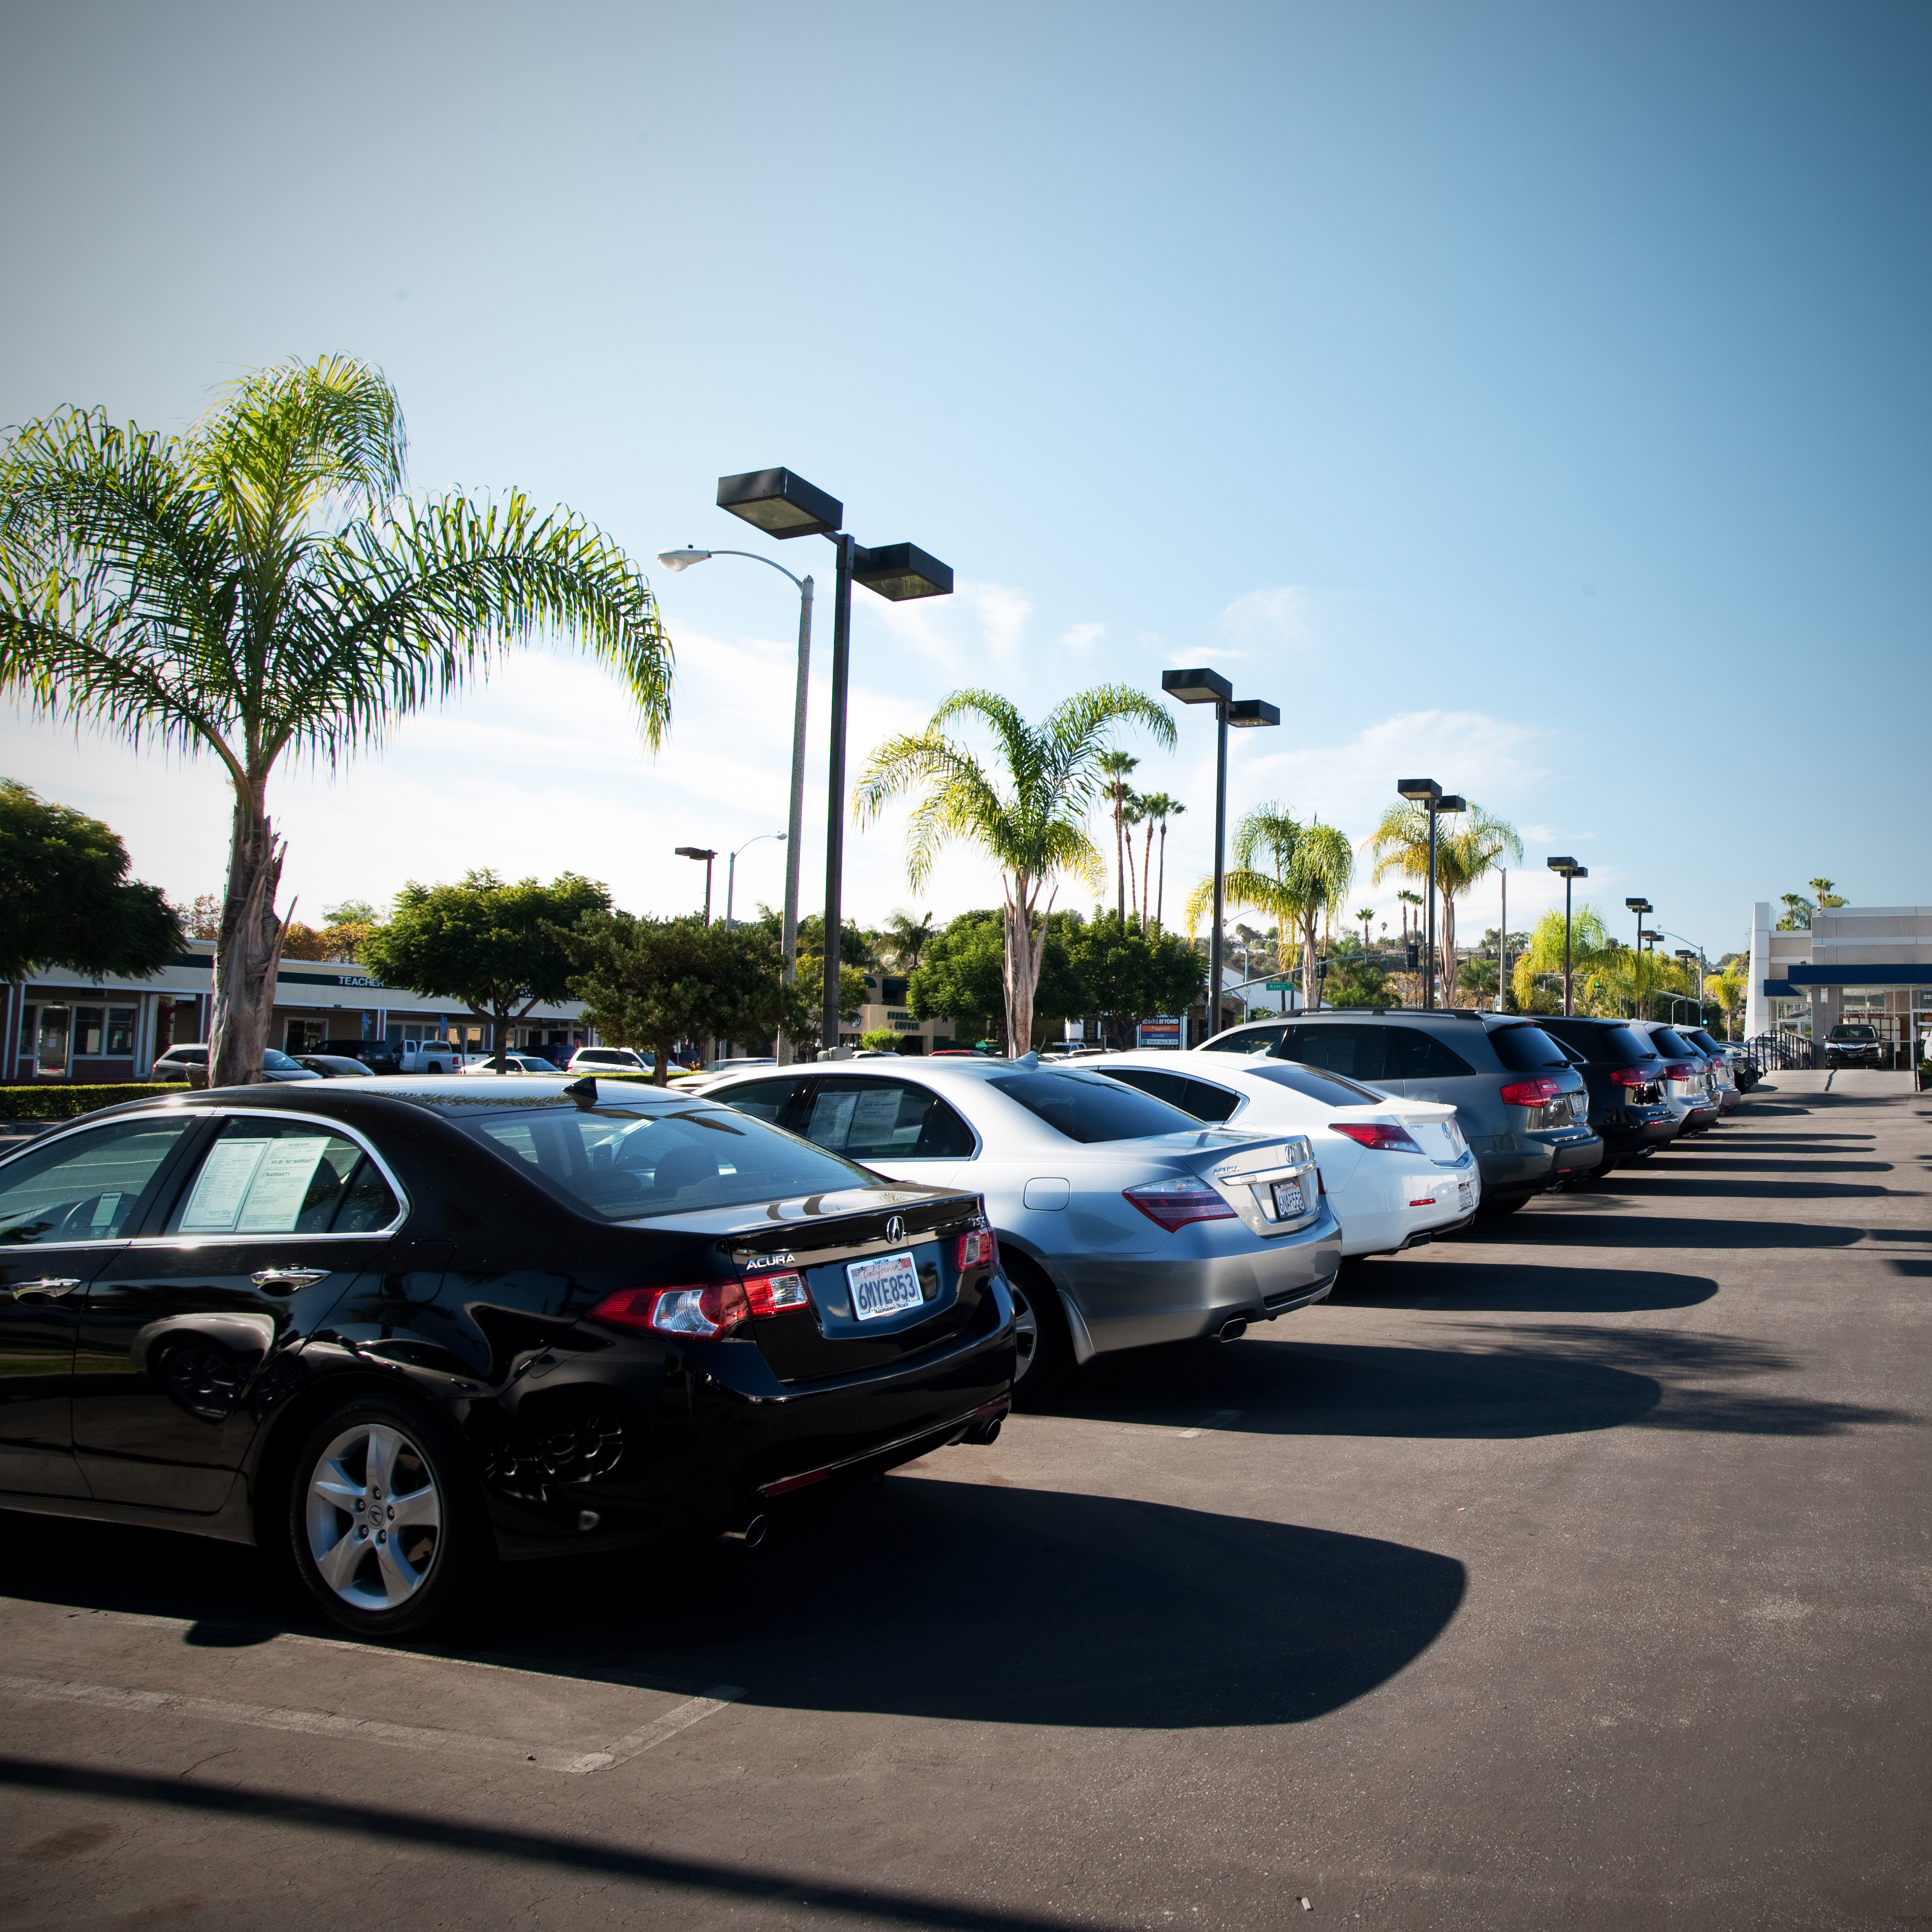 Autonation acura south bay at 25341 crenshaw boulevard for Mercedes benz south bay